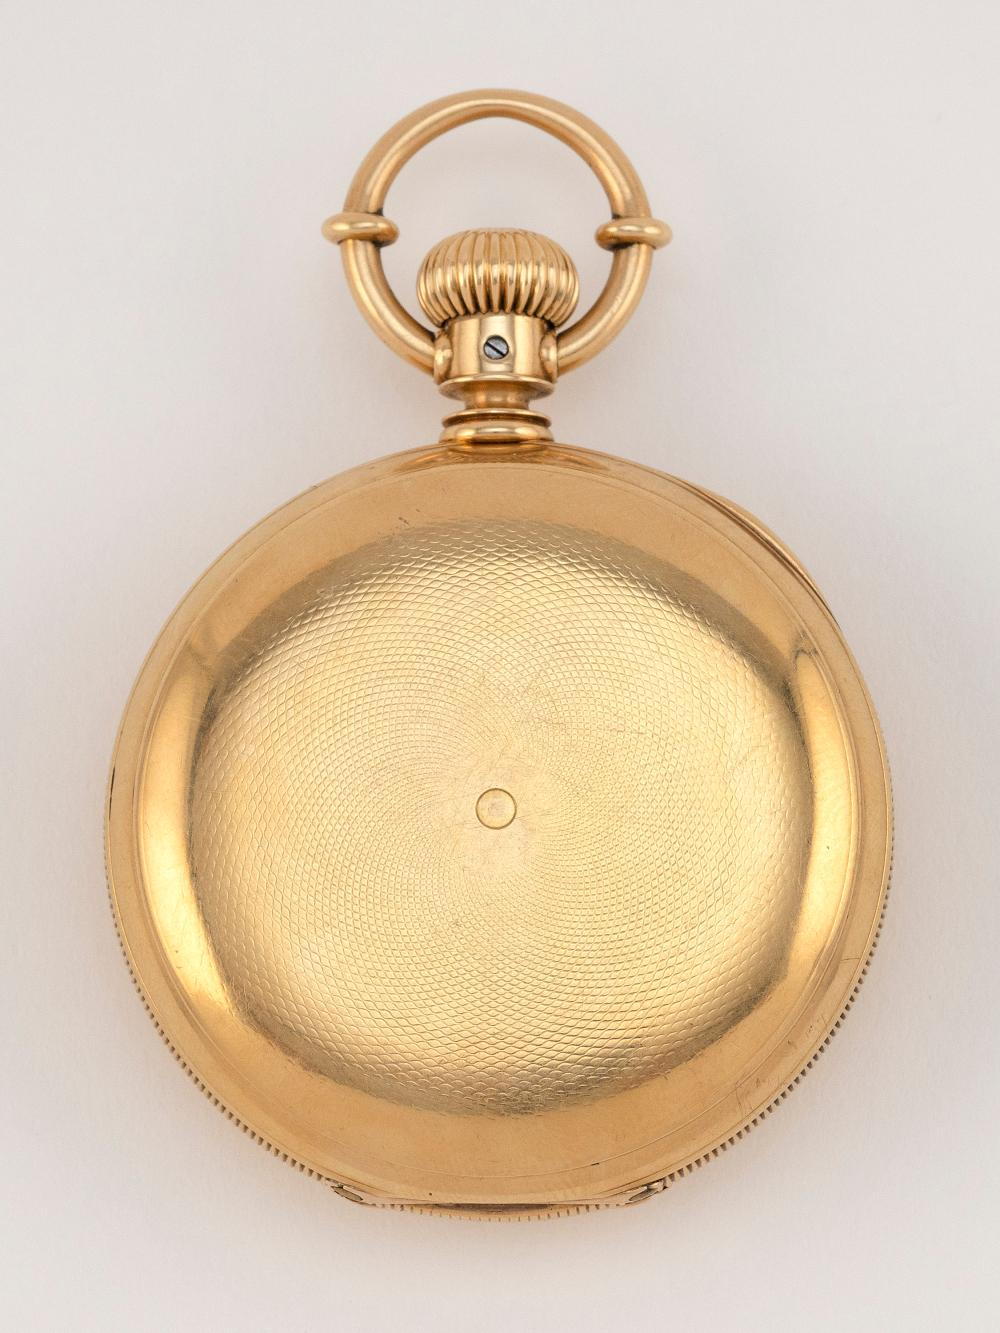 AMERICAN WATCH CO. 18KT GOLD CASED POCKET WATCH 1876 Approx. 87.06 total dwt.